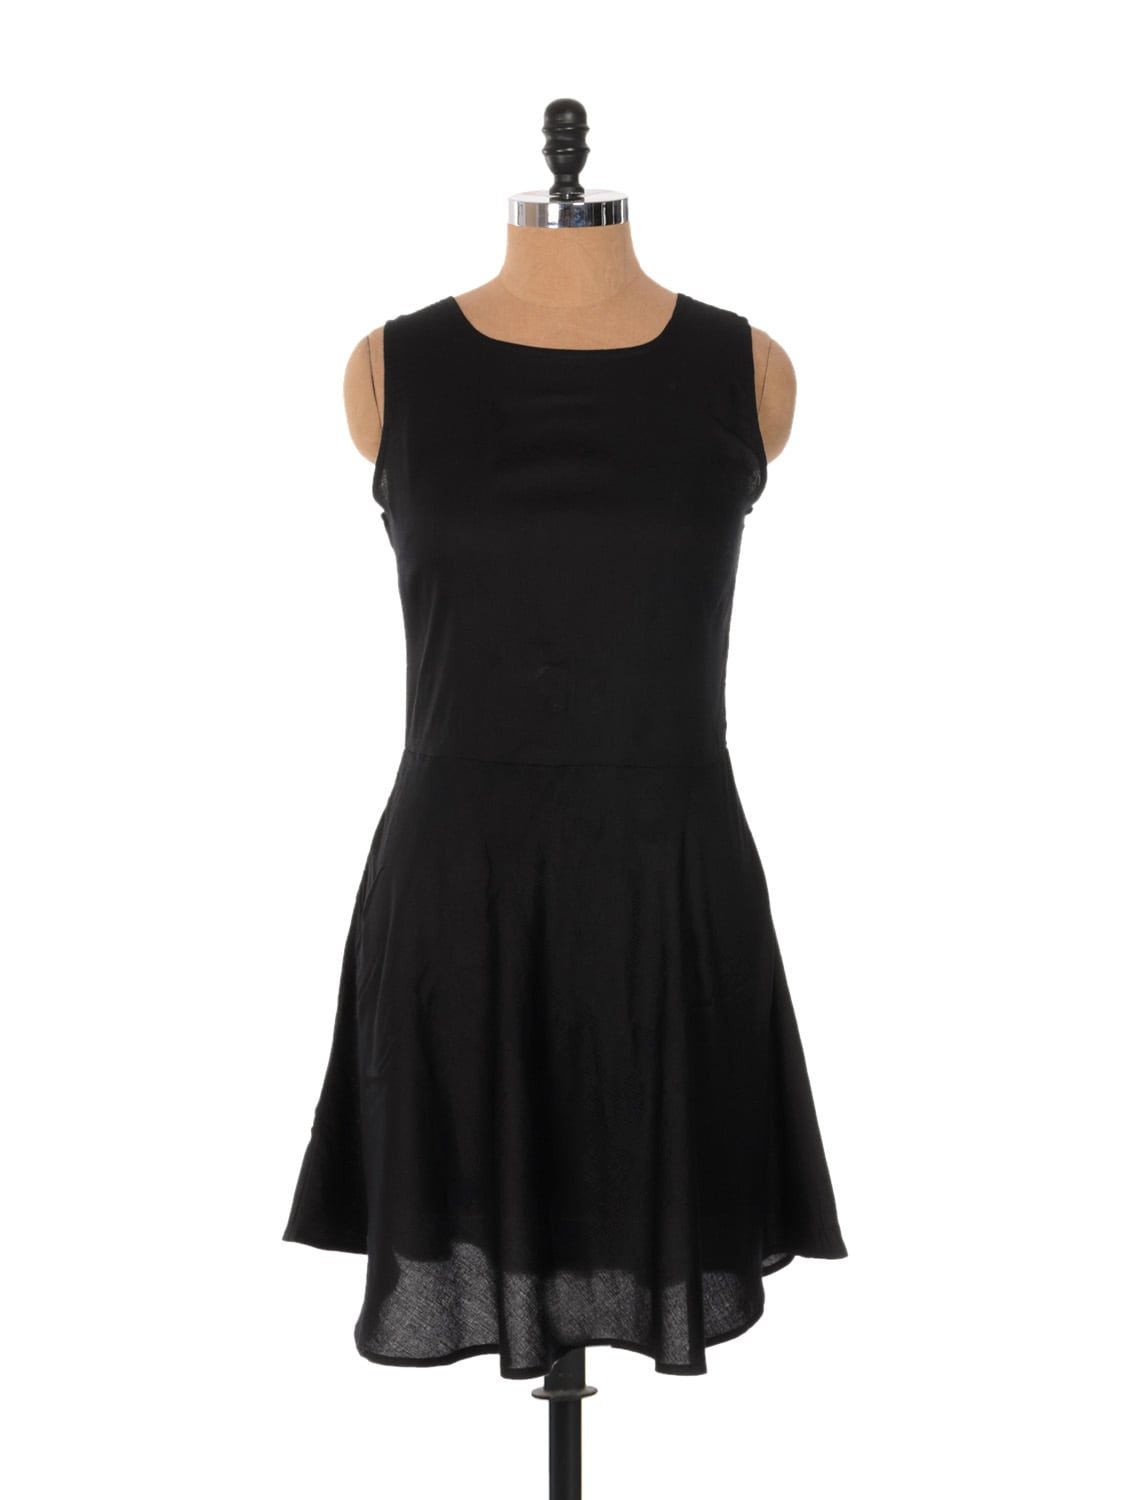 Black Frilly Dress With A Tie-up Bow On Back - Xniva